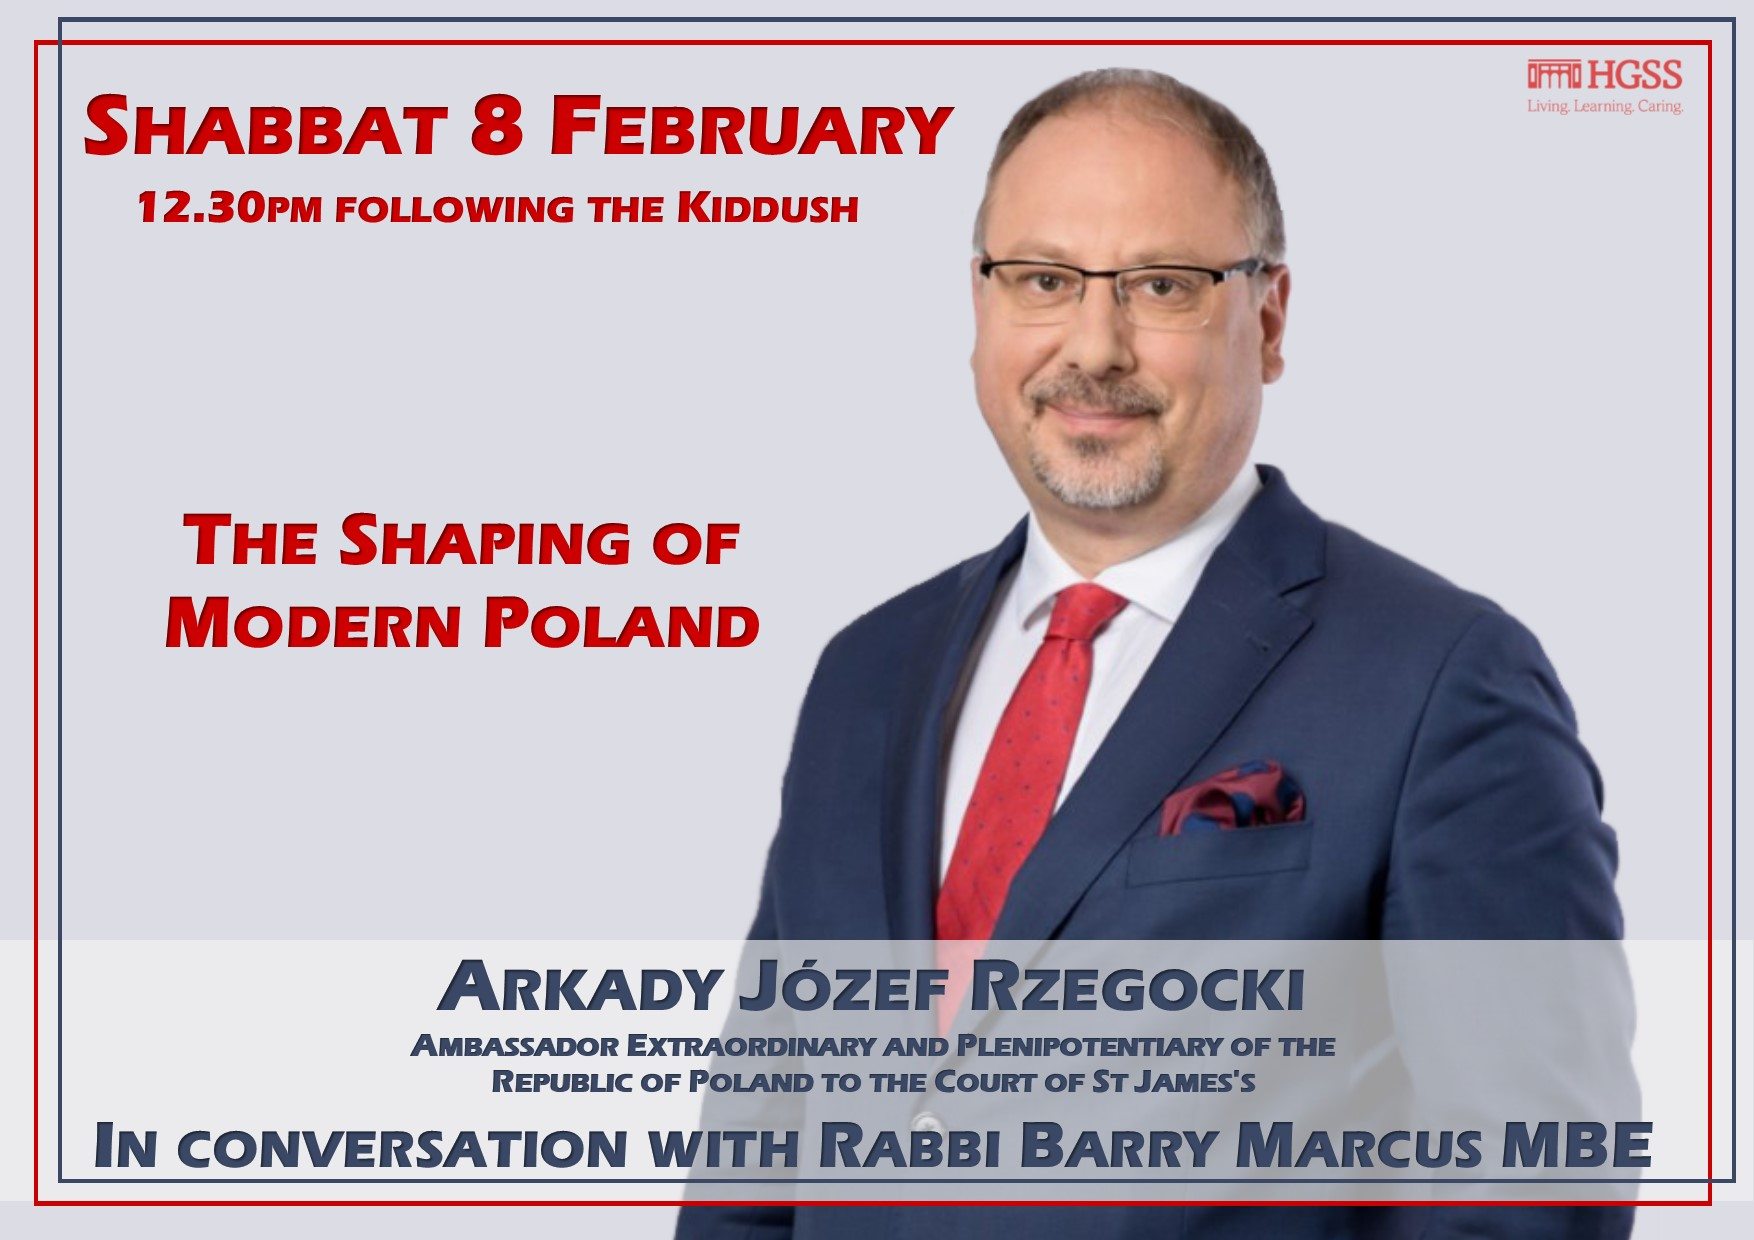 The Shaping of Modern Poland @ HGSS